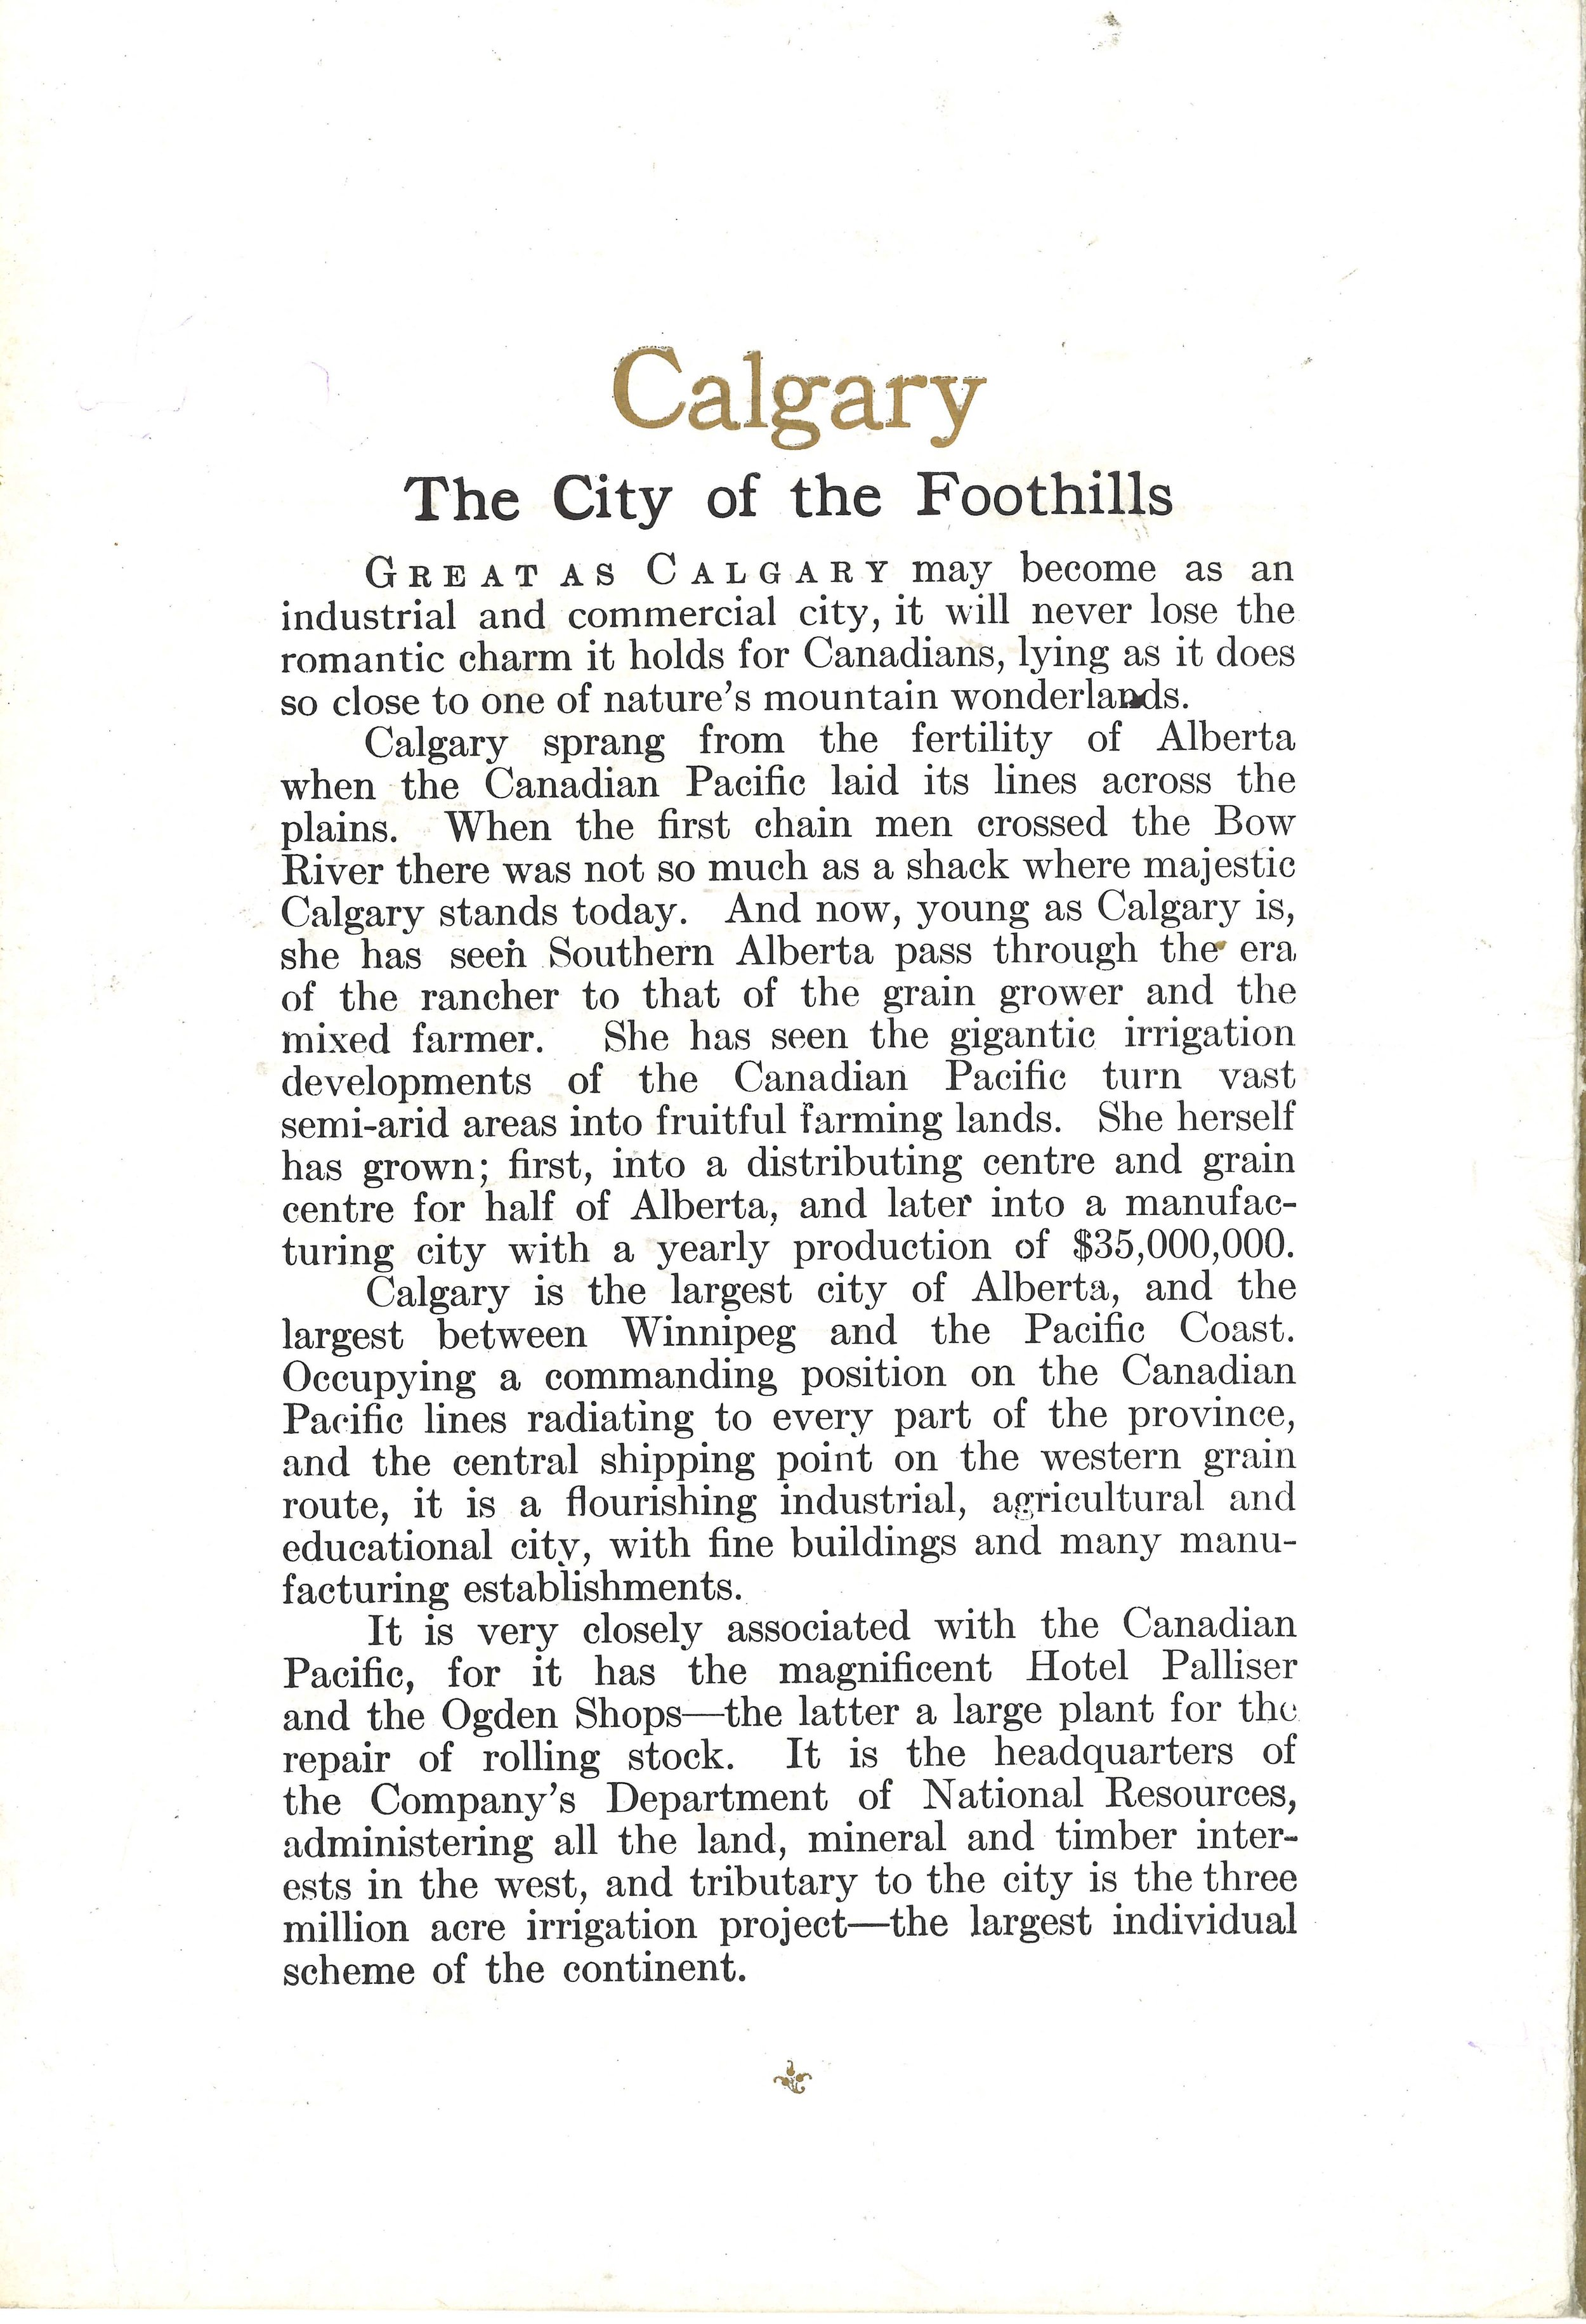 Canadian Pacific Calgary City of the Foothills Menu _sm3.jpg